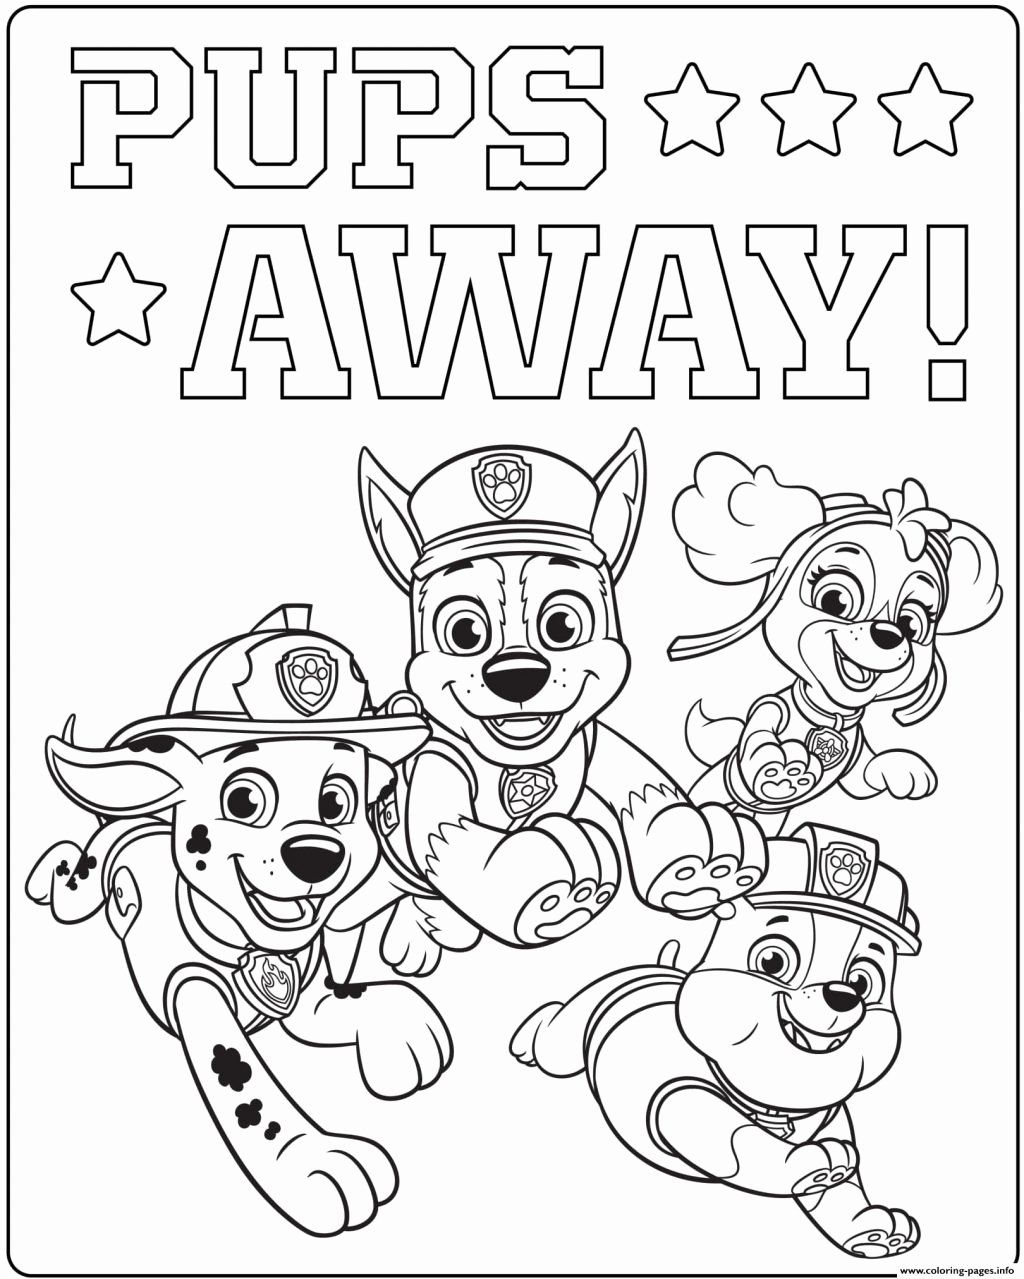 Easy Coloring Pages To Print Awesome Coloring Coloring Pages Printable Paw Patrol Colouri Paw Patrol Coloring Birthday Coloring Pages Paw Patrol Coloring Pages